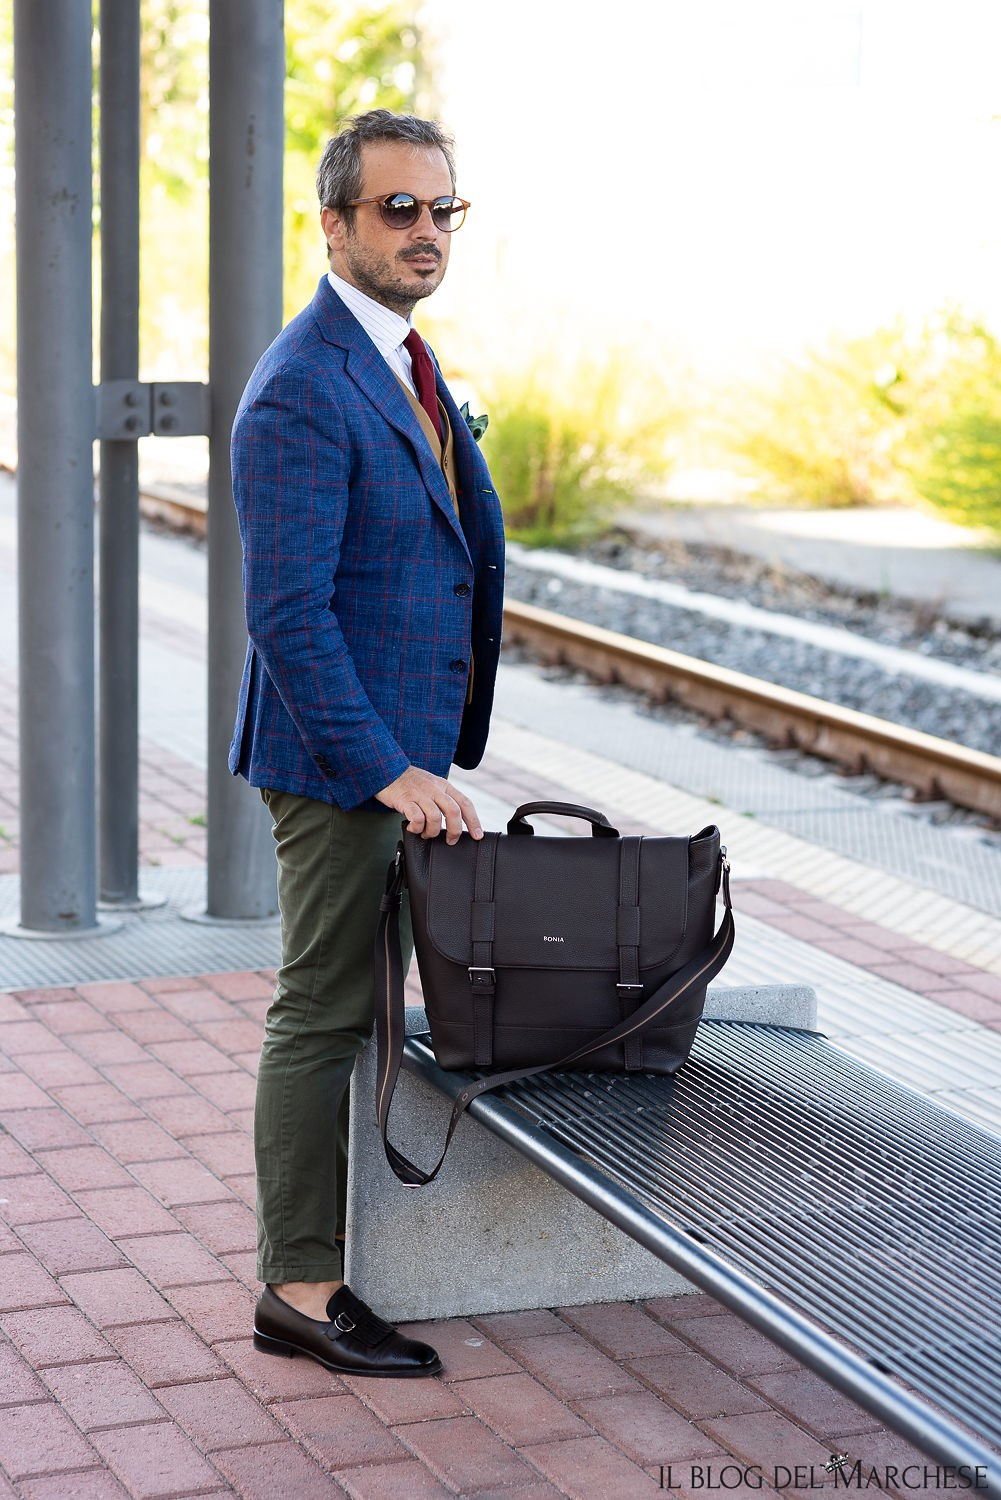 Neapolitan crafted suits